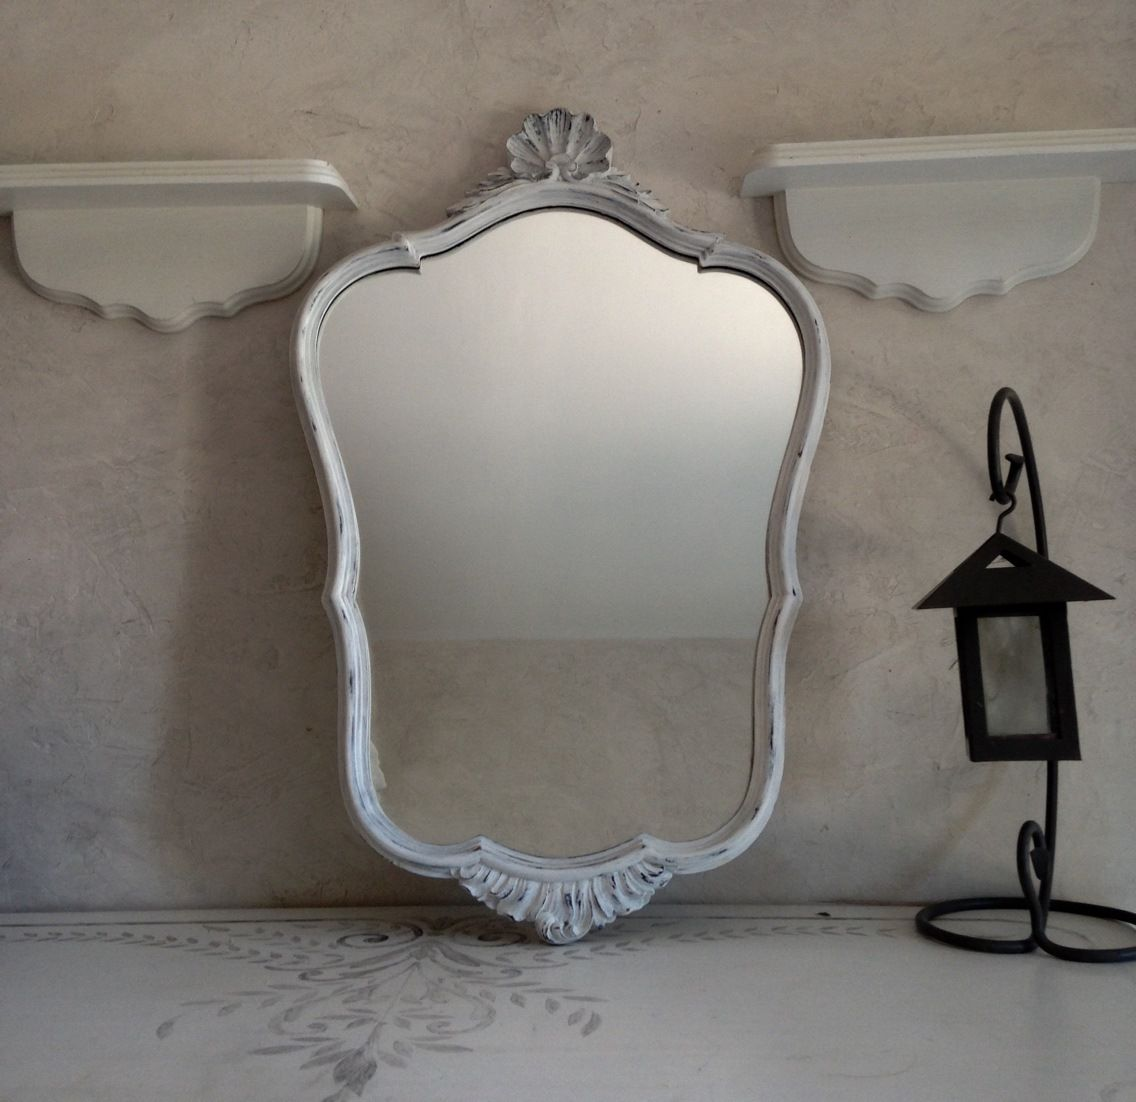 Miroir moulure coquille effet shabby chic d corations for Miroir moulure